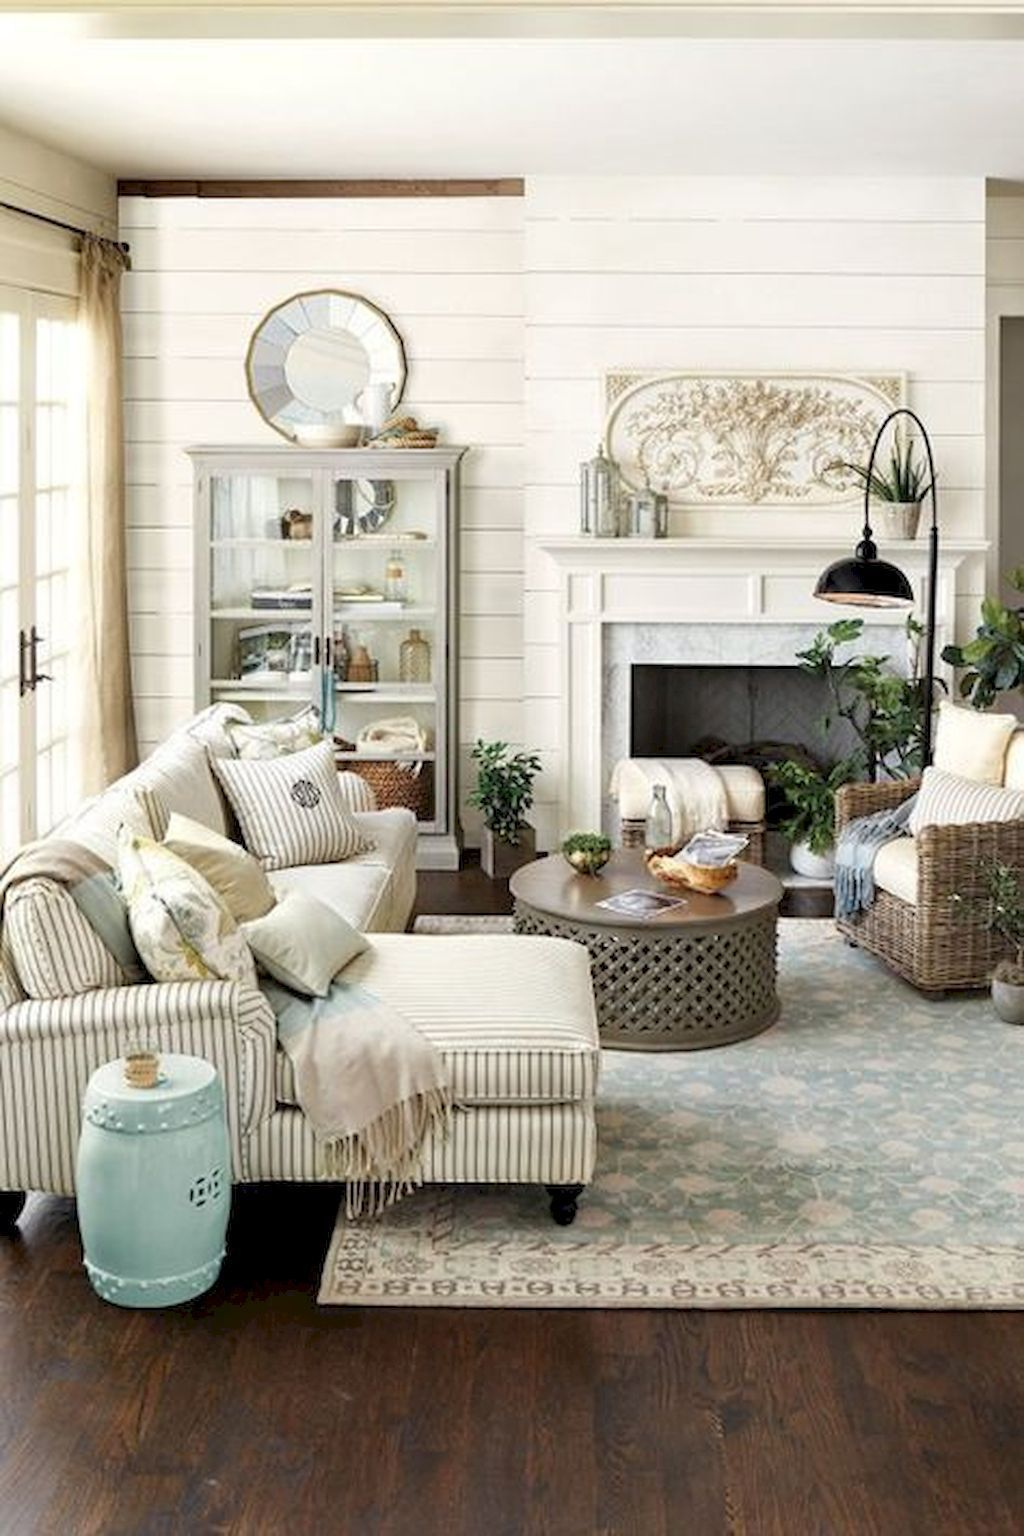 75 warm and cozy farmhouse style living